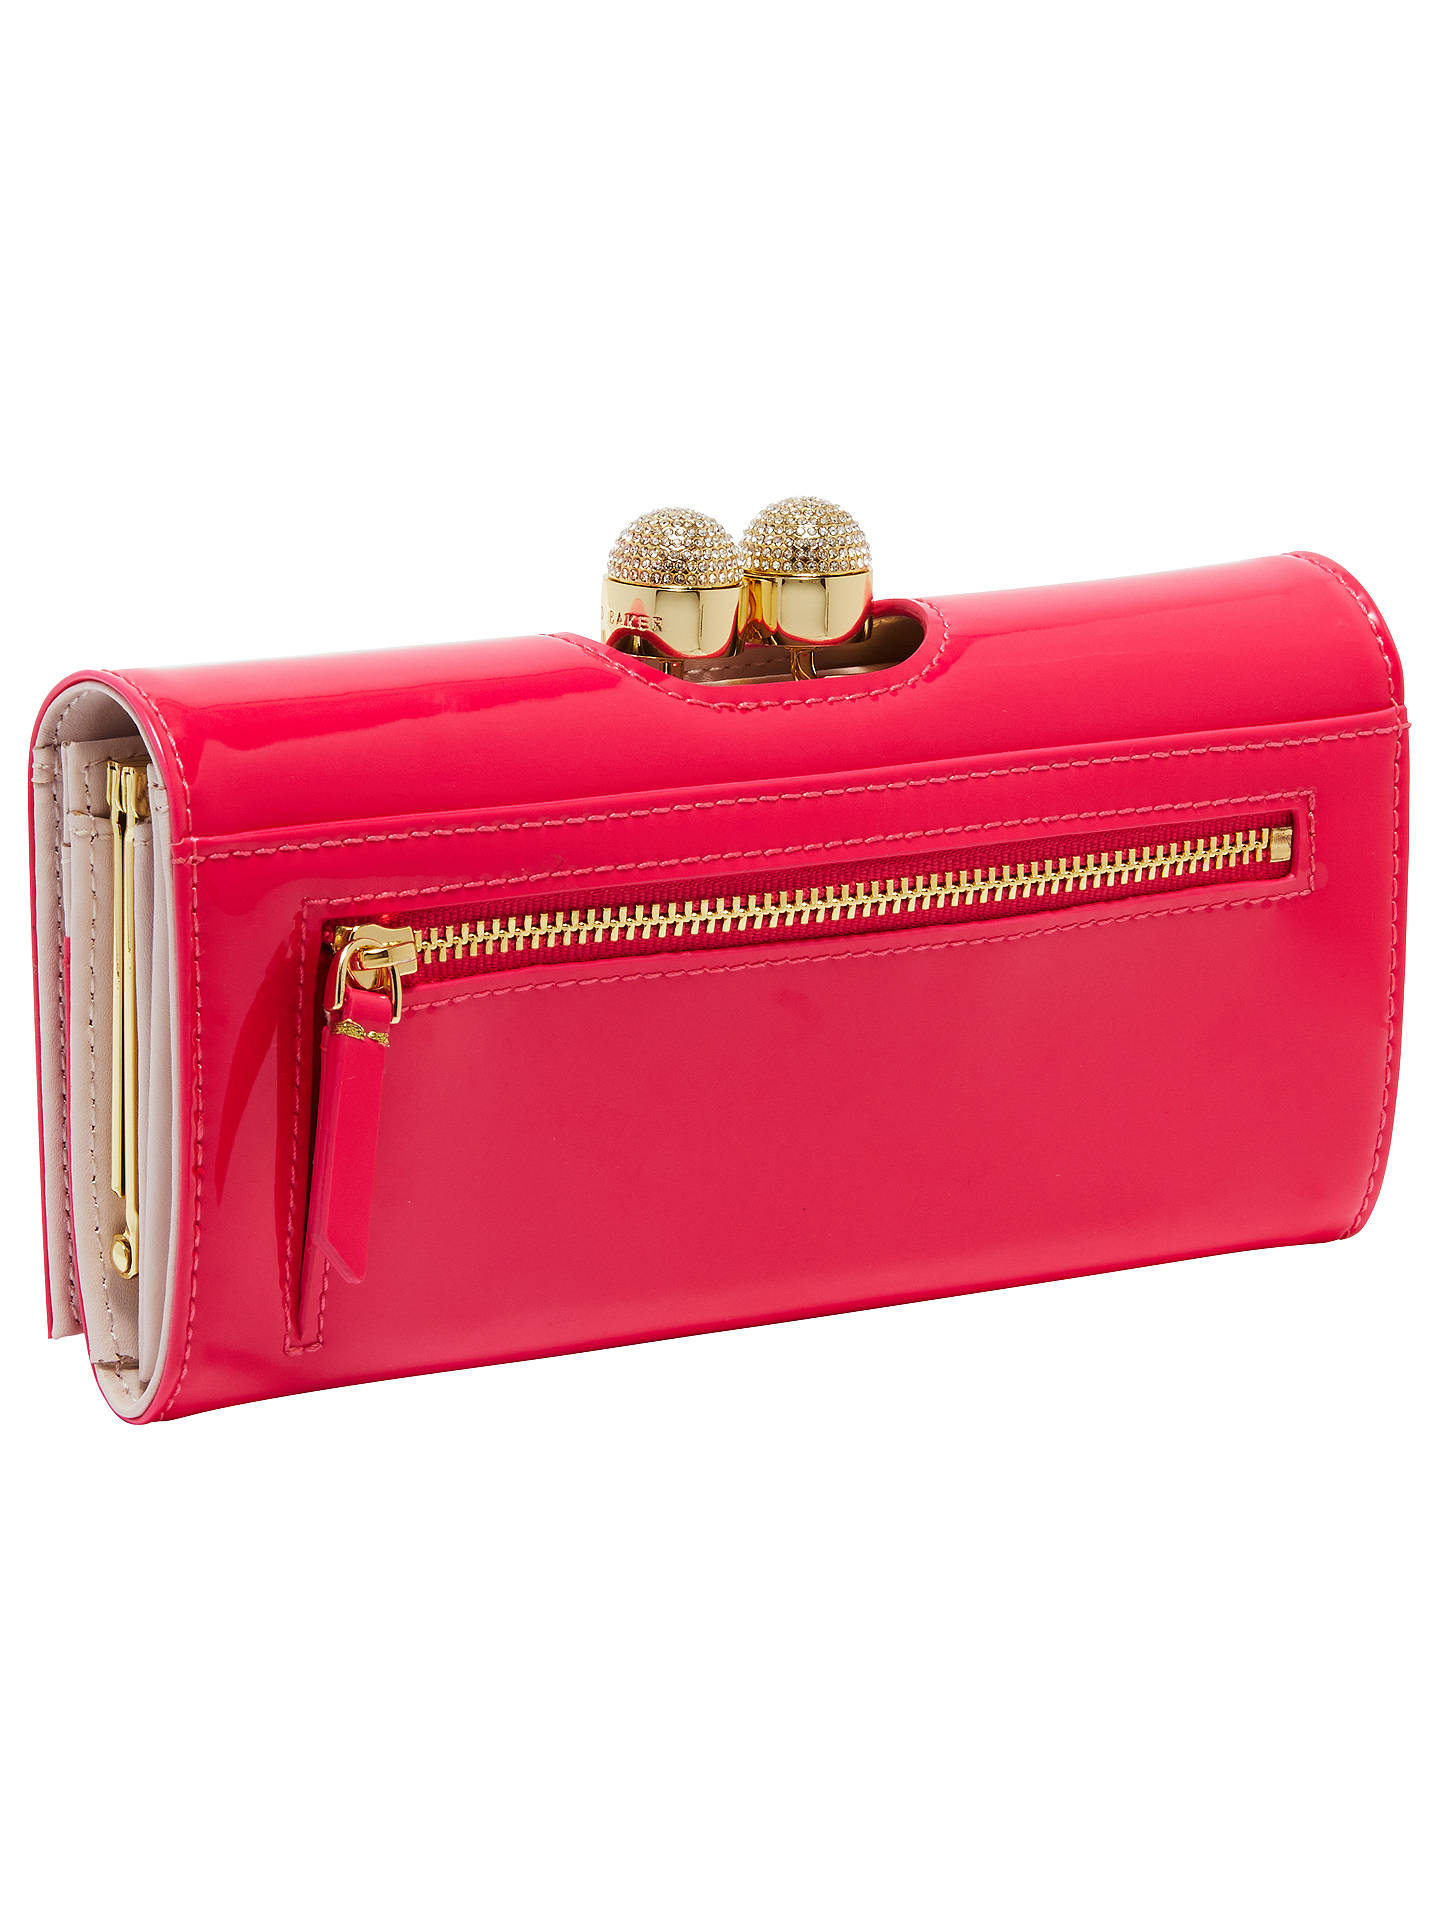 739ed802062 ... Buy Ted Baker Shirly Leather Patent Bobble Matinee Purse, Fuchsia  Online at johnlewis.com ...